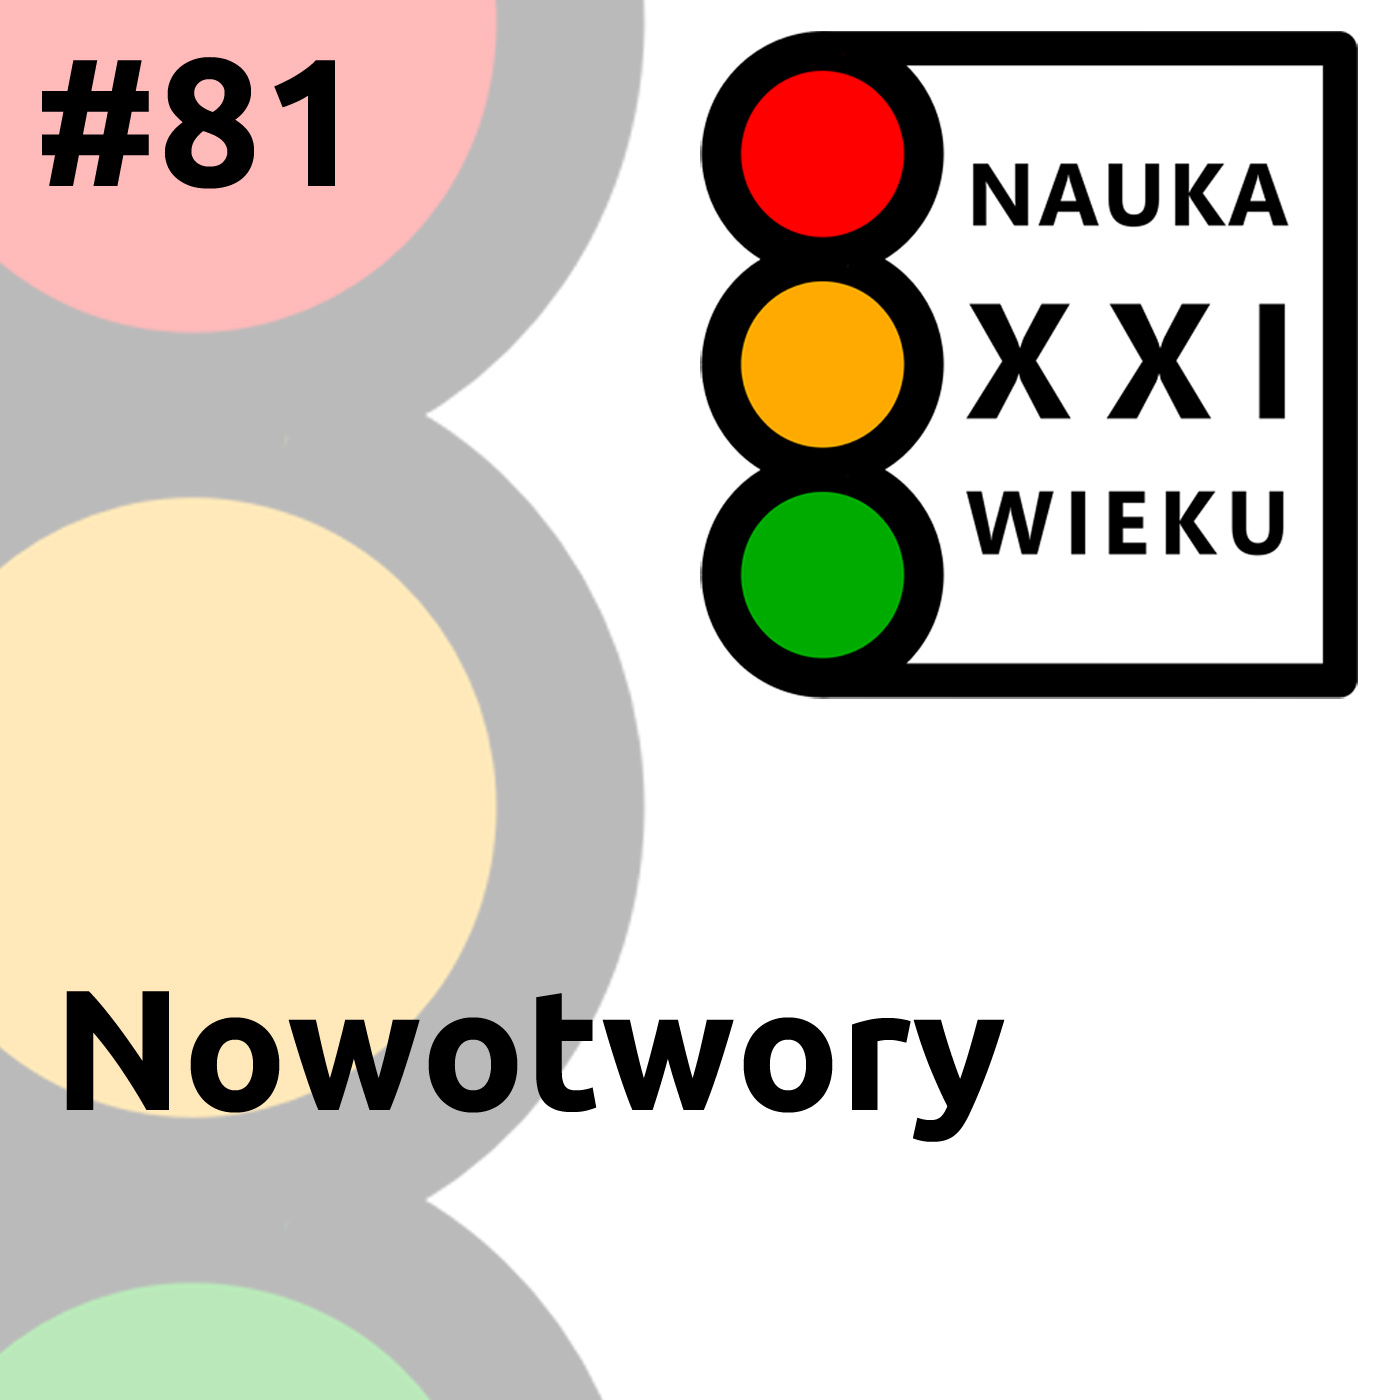 #81 - Nowotwory